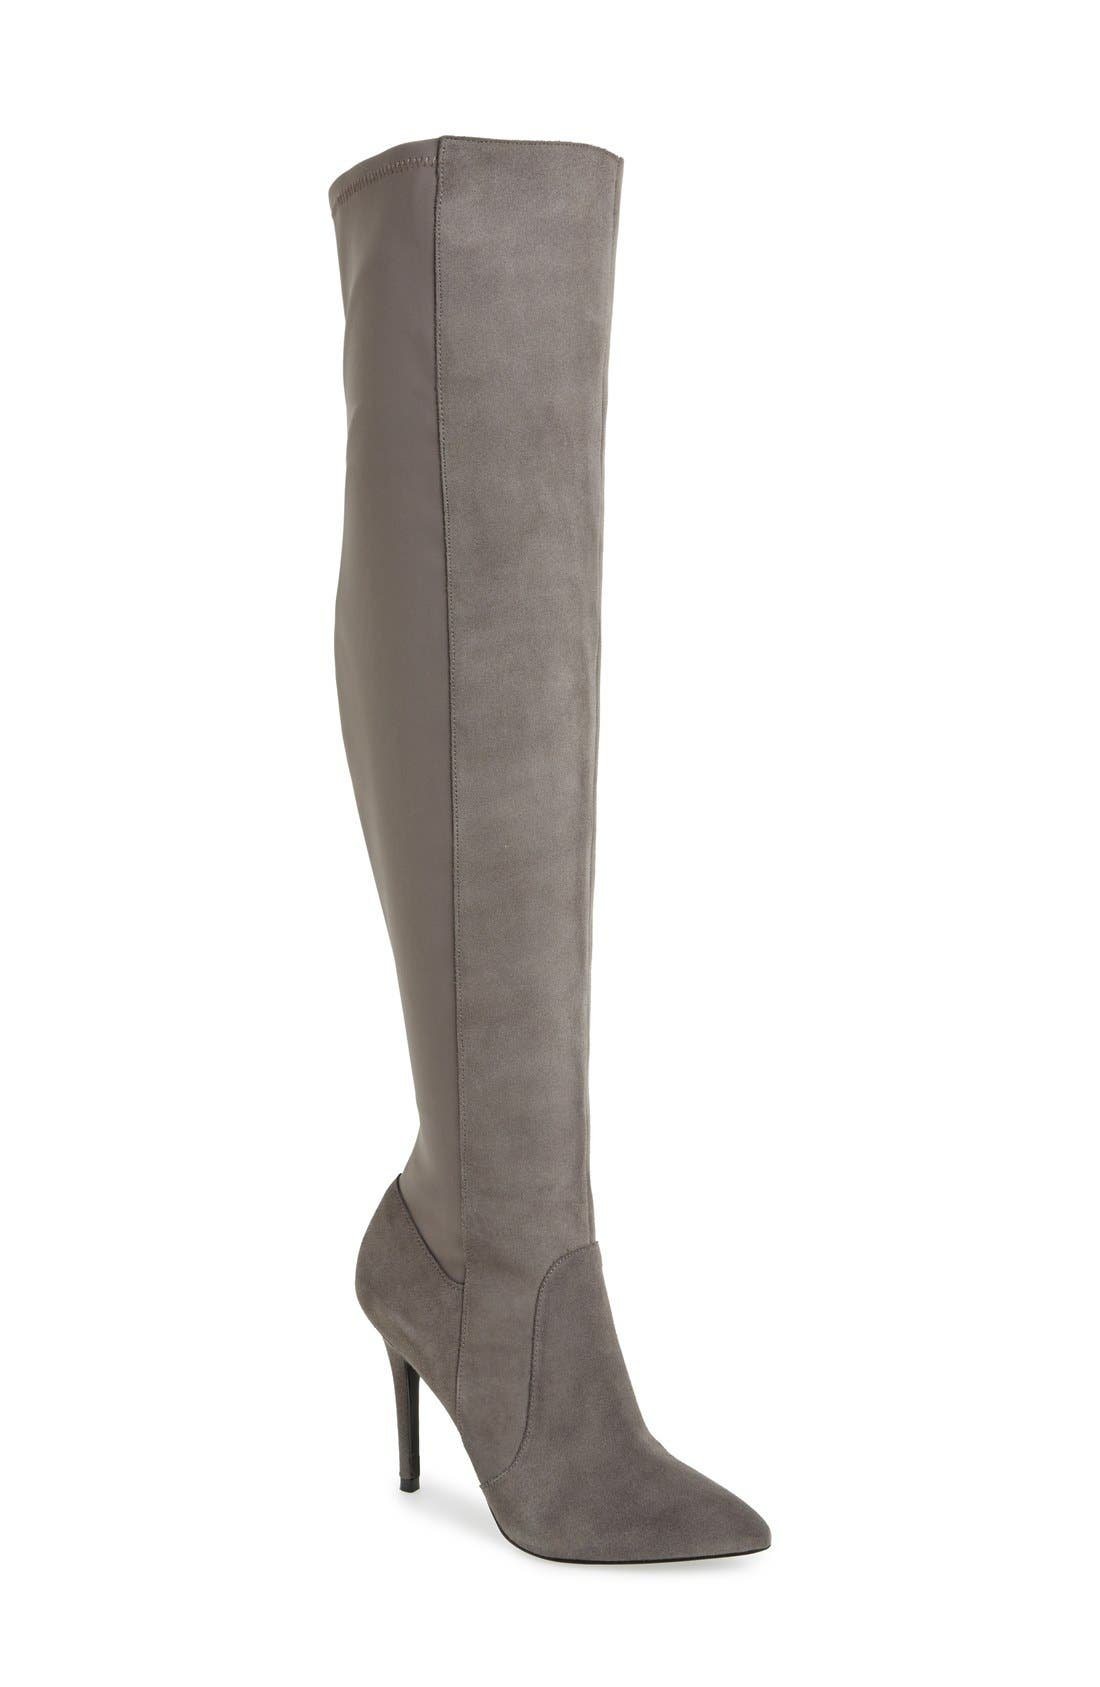 Main Image - Charles by Charles David 'Paso' Over The Knee Boot (Women)